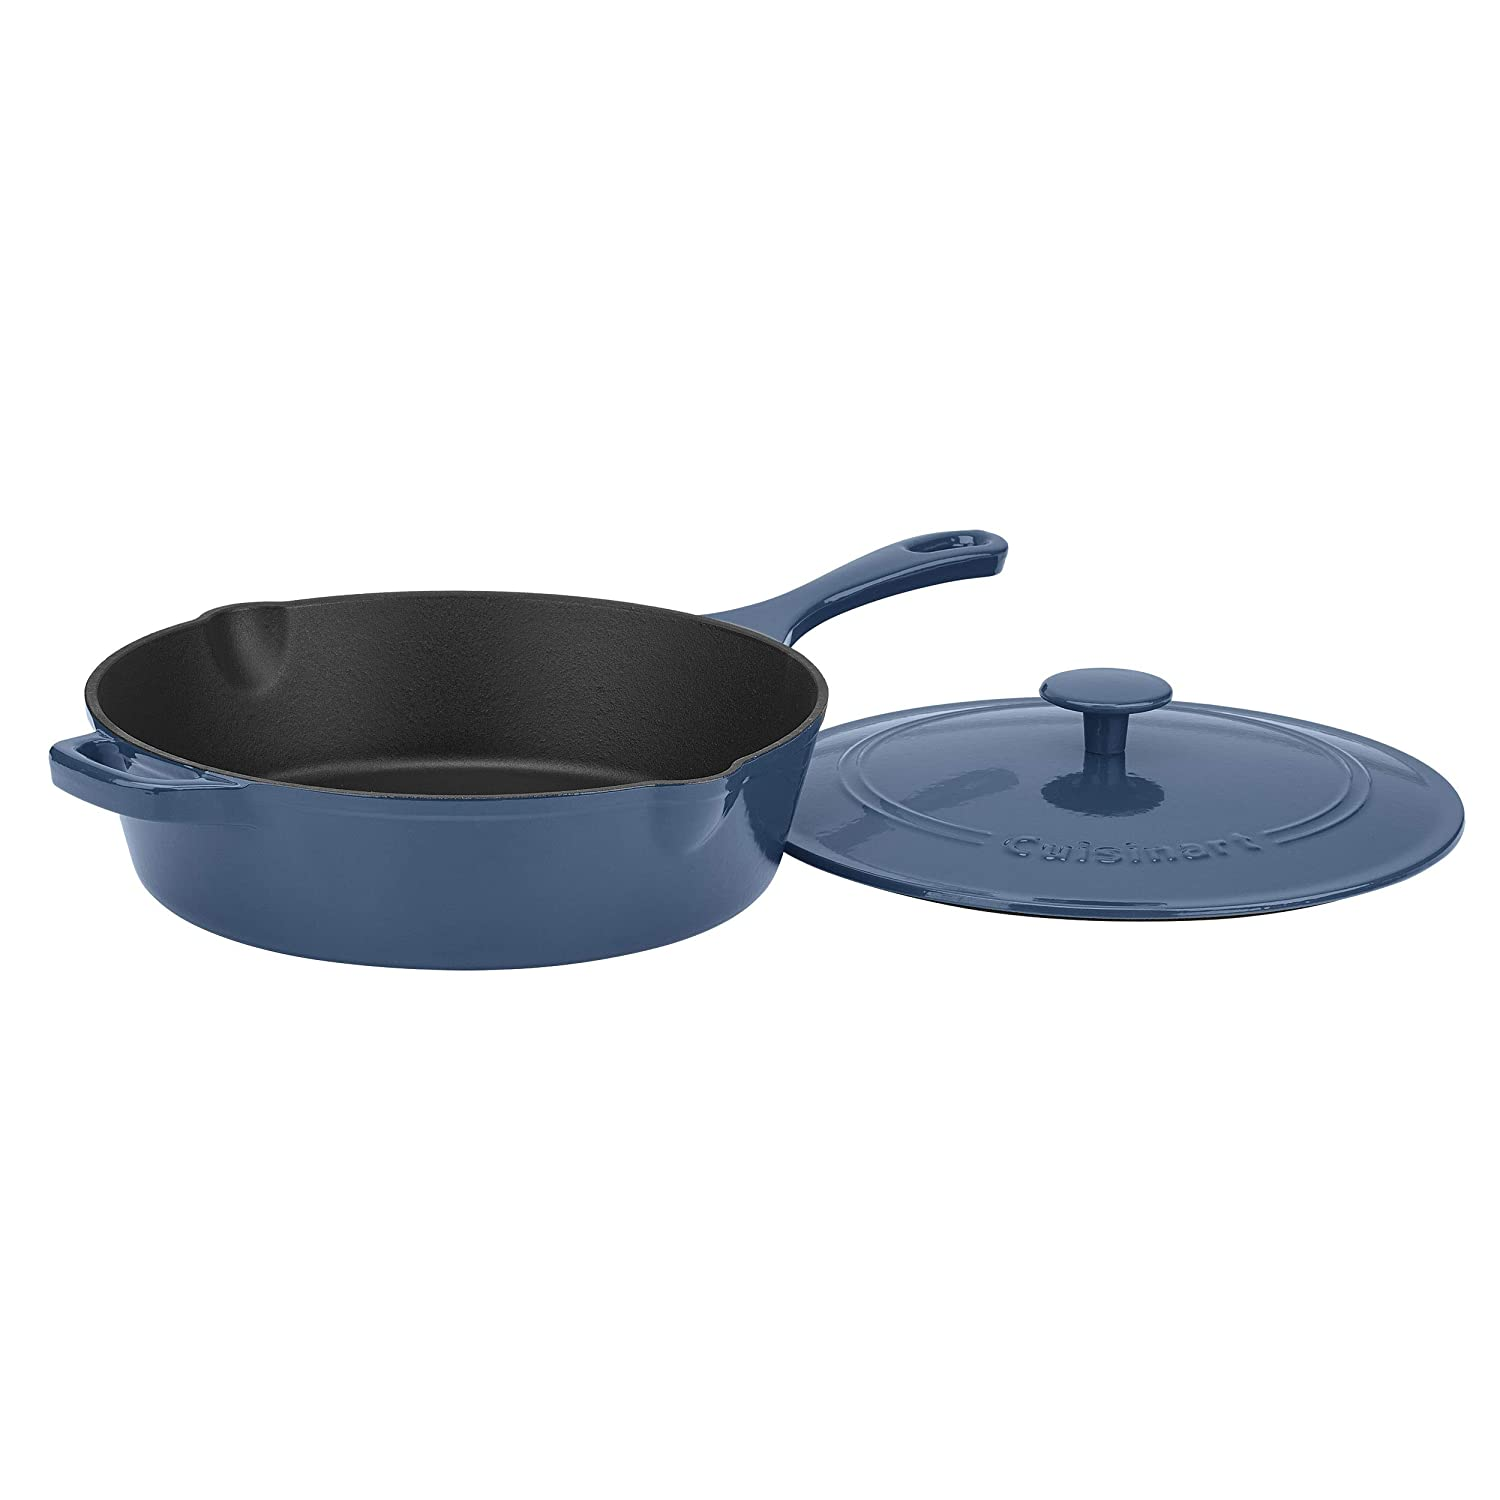 "Cuisinart CI45-30BG Cast Iron Pan, 12"" Chicken Fryer, Enameled Provencial Blue"